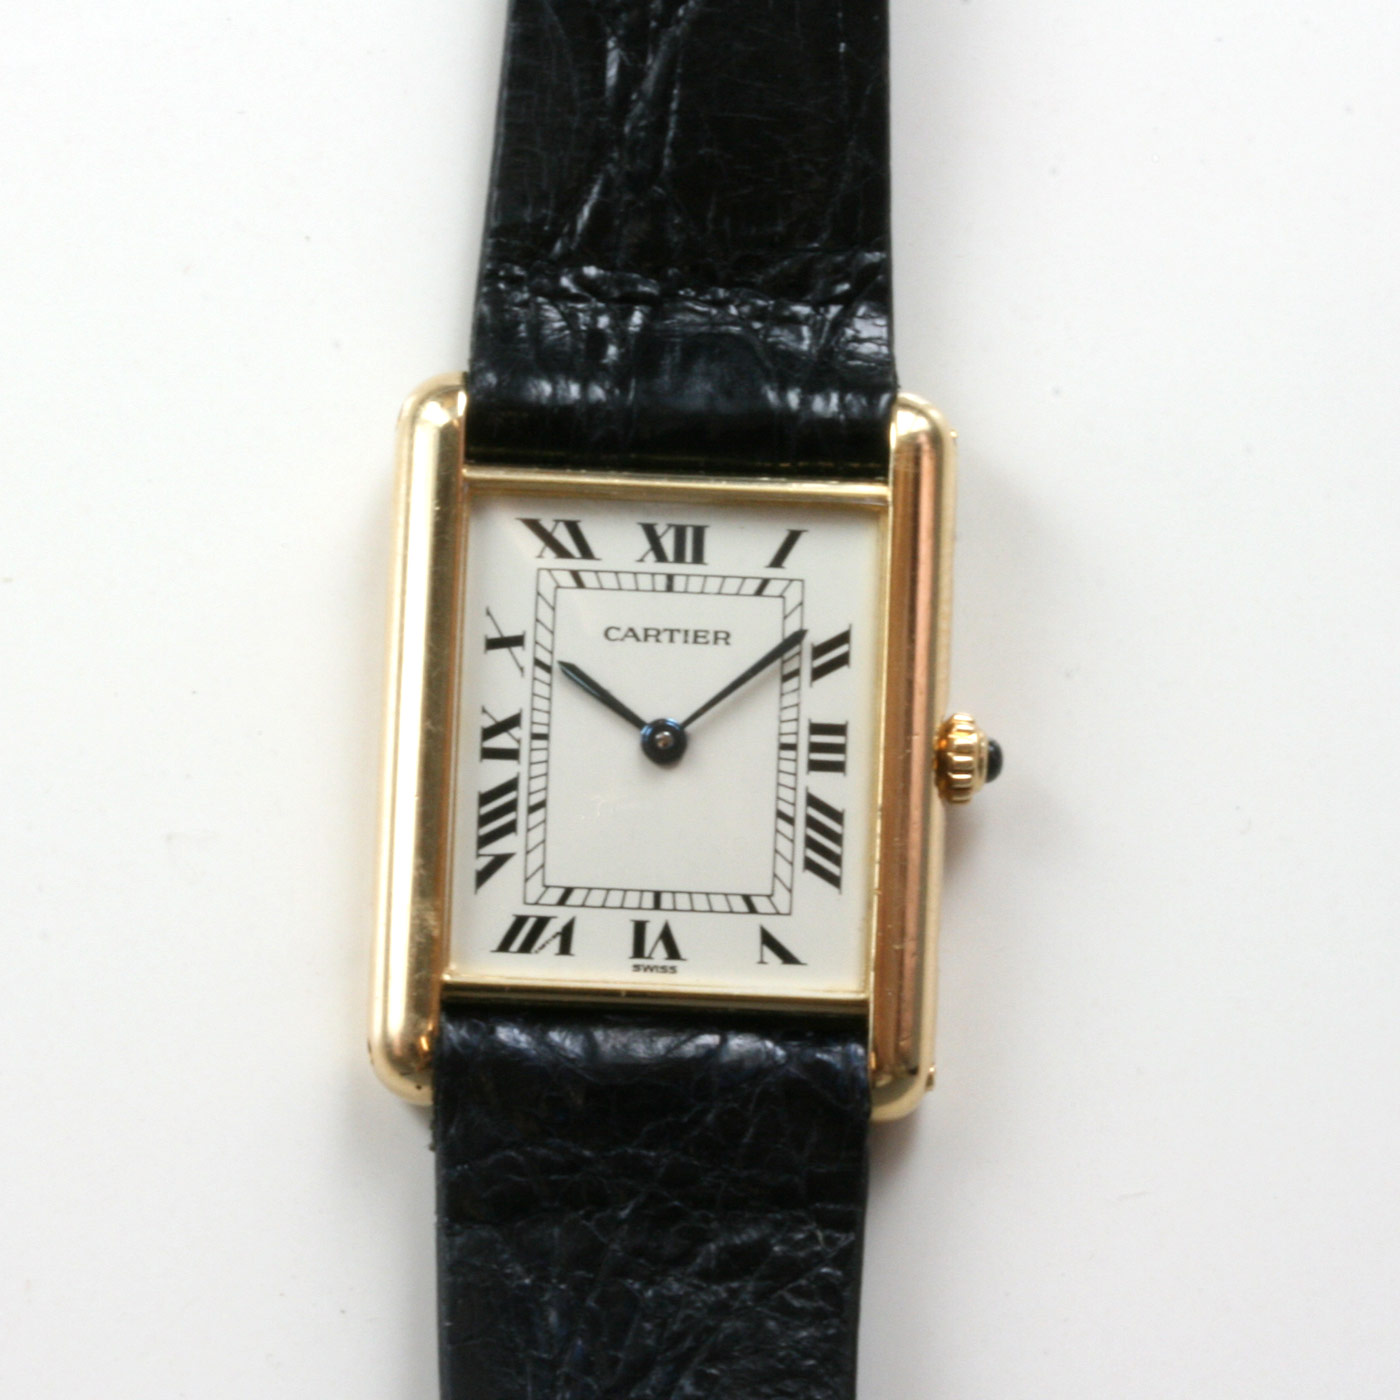 Buy Gents Cartier Tank watch in 18ct gold Sold Items  Sold Watches     Gents Cartier Tank watch in 18ct gold